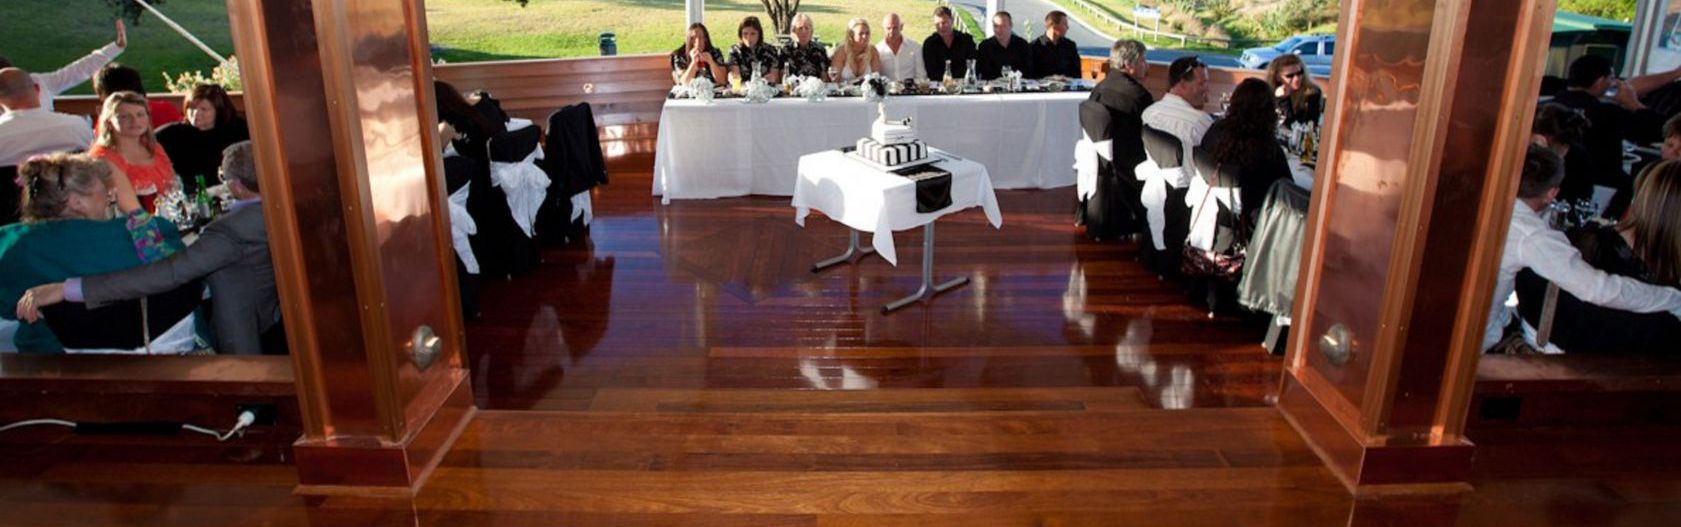 A wedding reception in the Bay of Plenty after one of our timber floor finishes